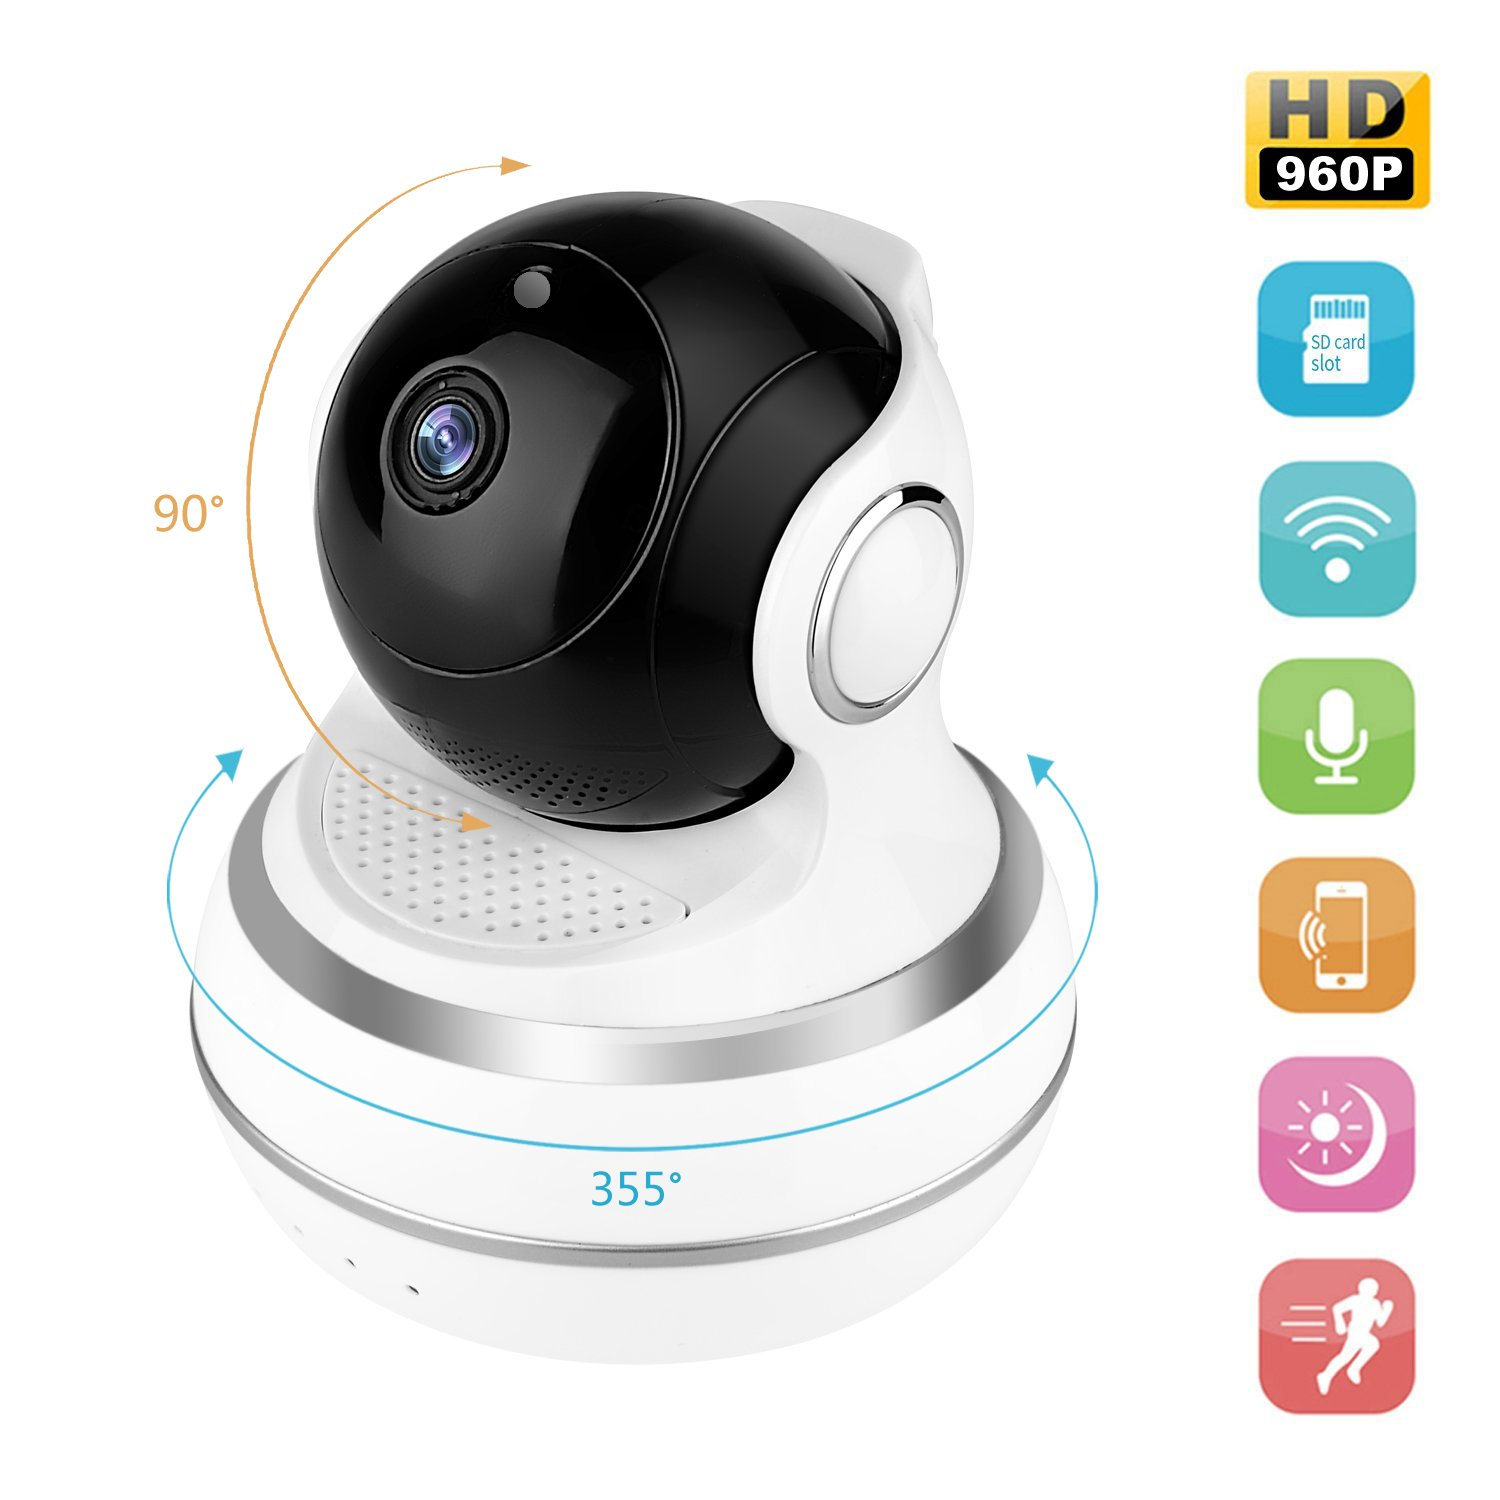 Dollermy Monitor Camera,960P HD Home WiFi Wireless Security Surveillance Camera with Motion Detection Pan/Tilt, 2 Way Audio and Night Vision Baby Monitor